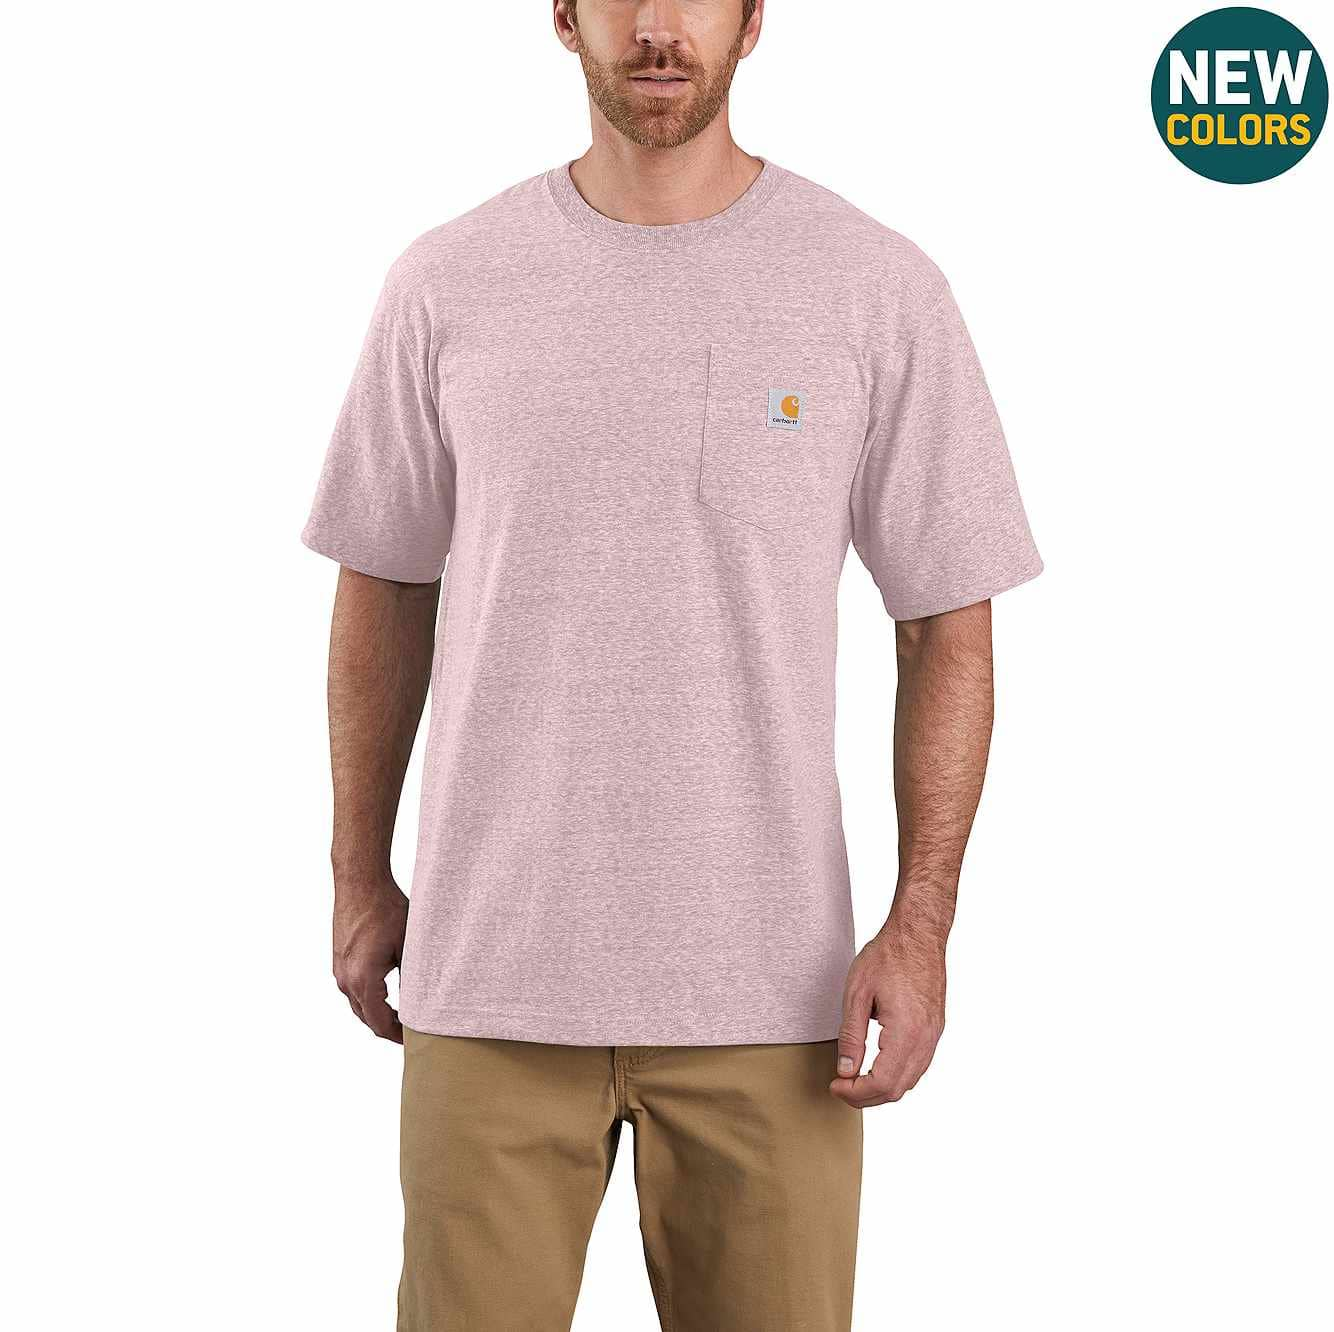 Picture of Loose Fit Heavyweight Short-Sleeve Pocket T-Shirt in Crepe Snow Heather